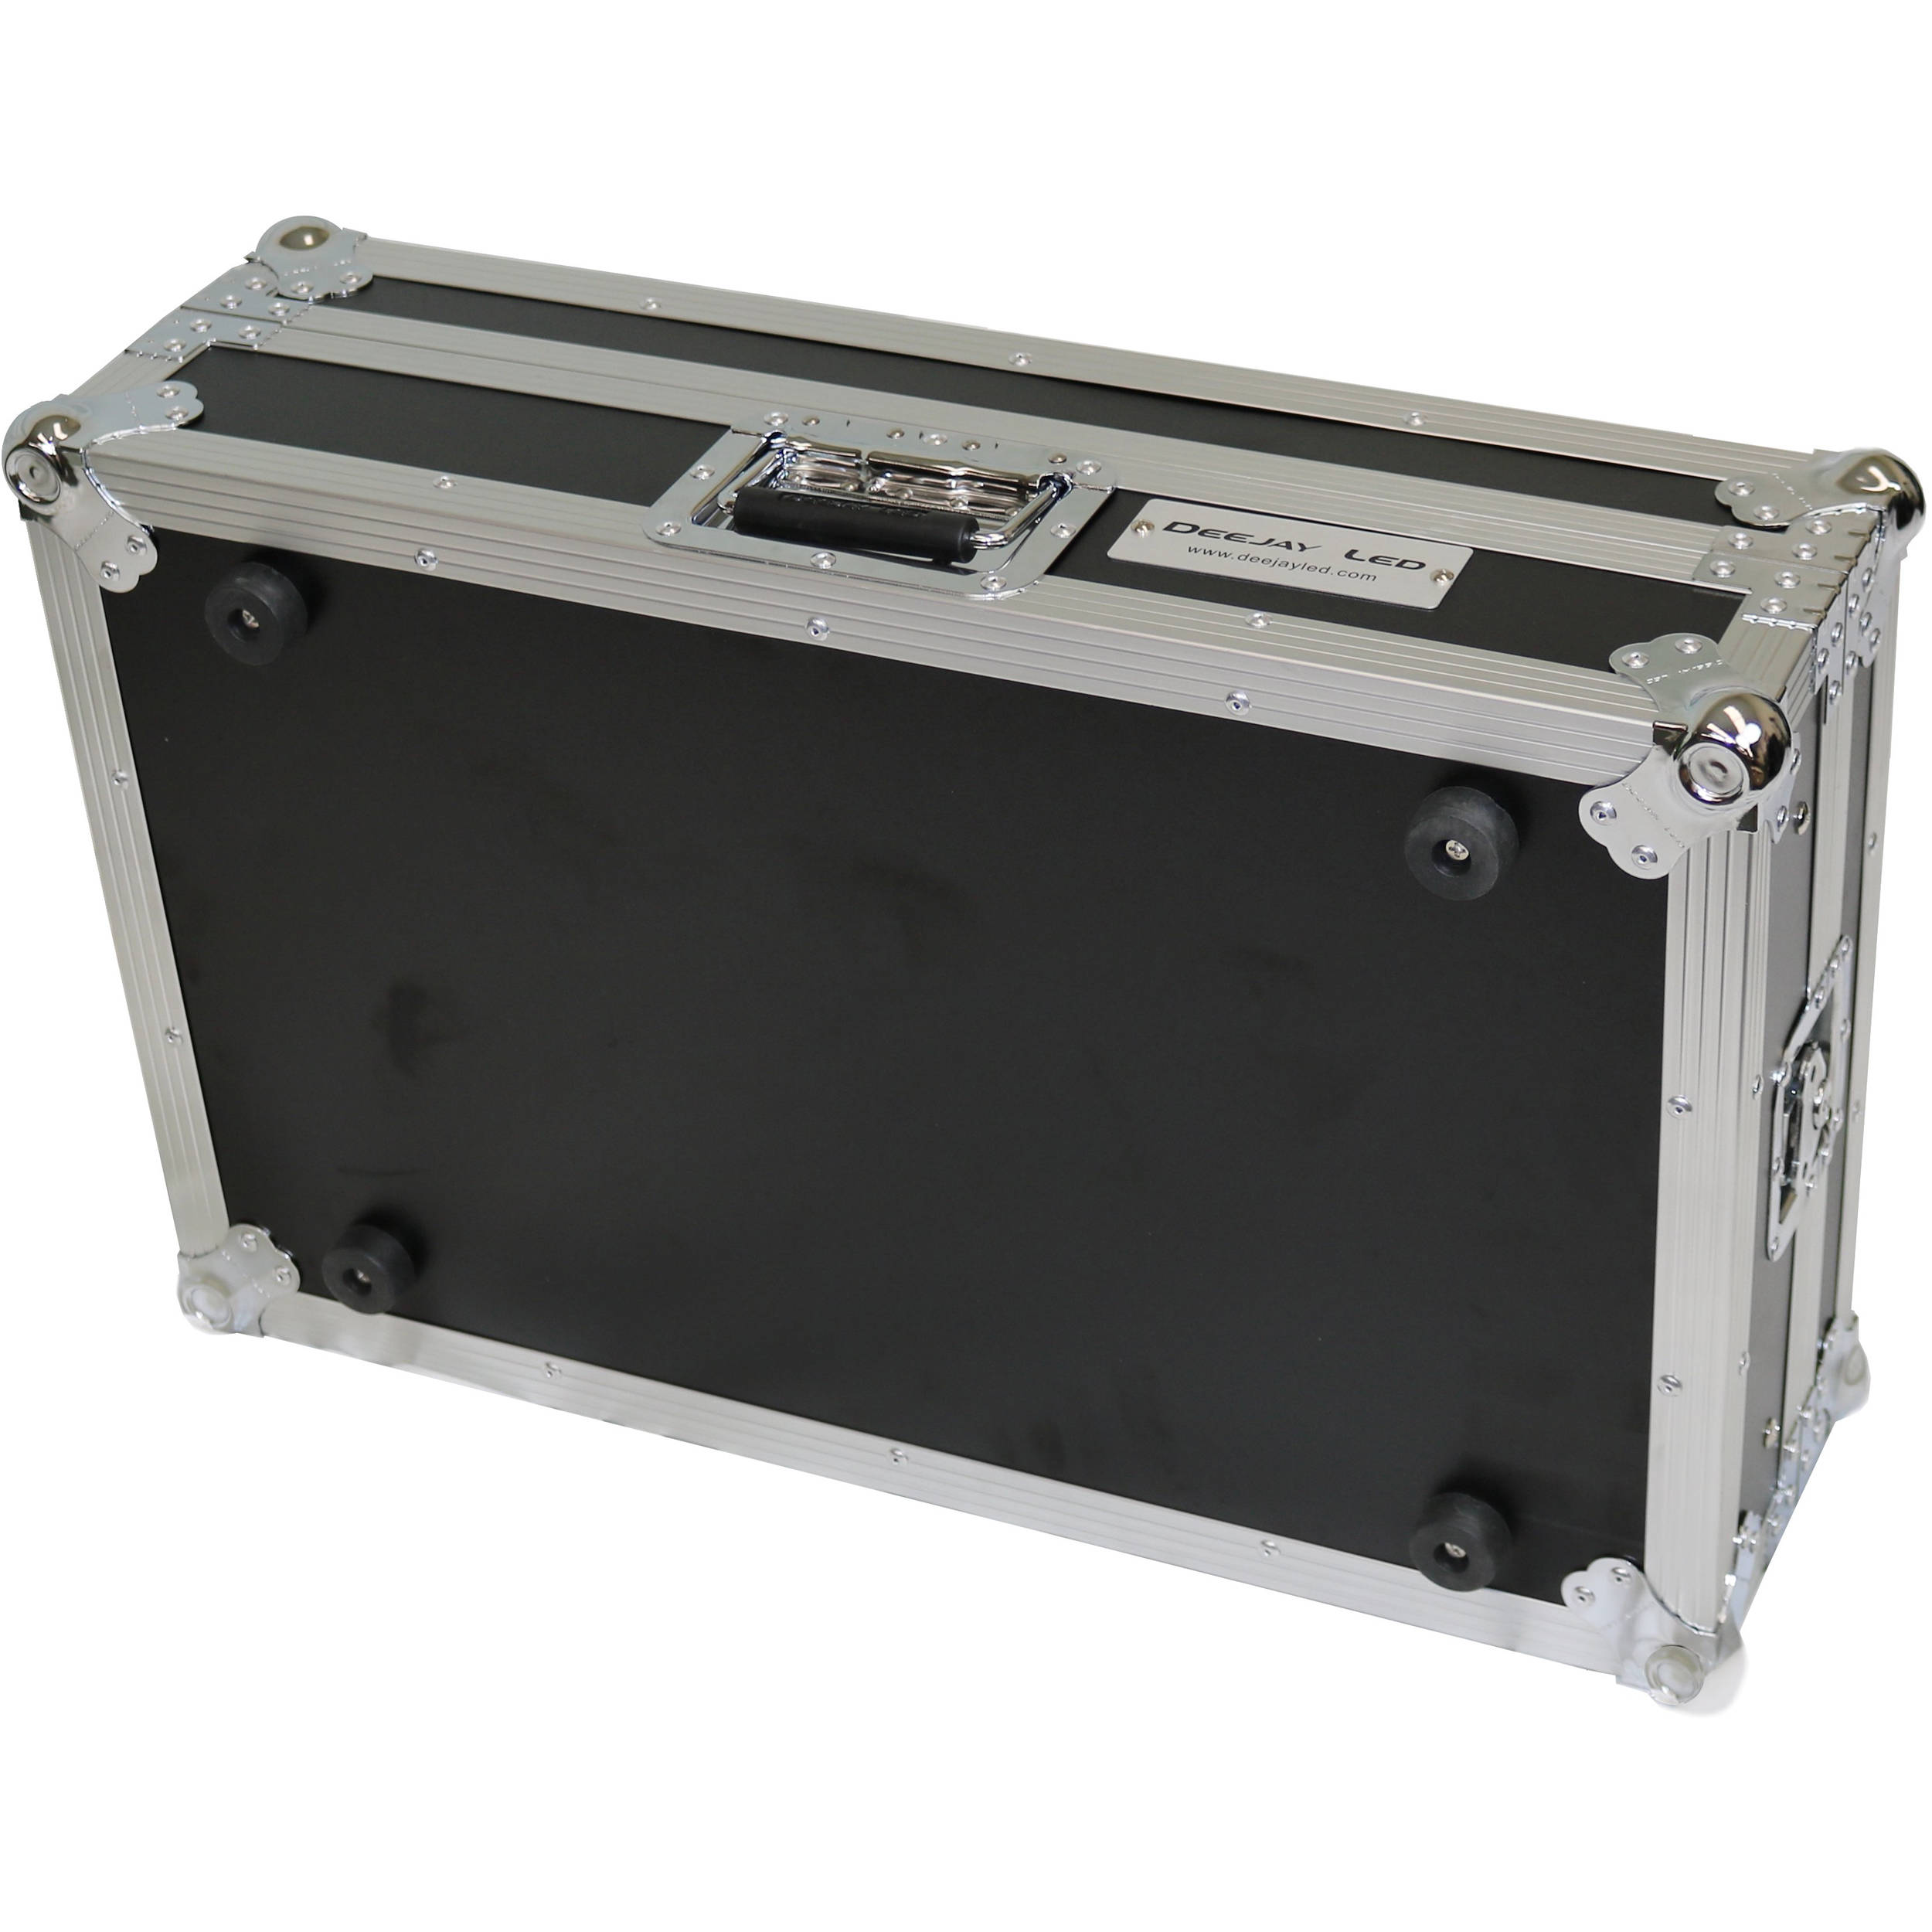 Deejayled TBHDDJ800LT Case For Ddj800 With Laptop